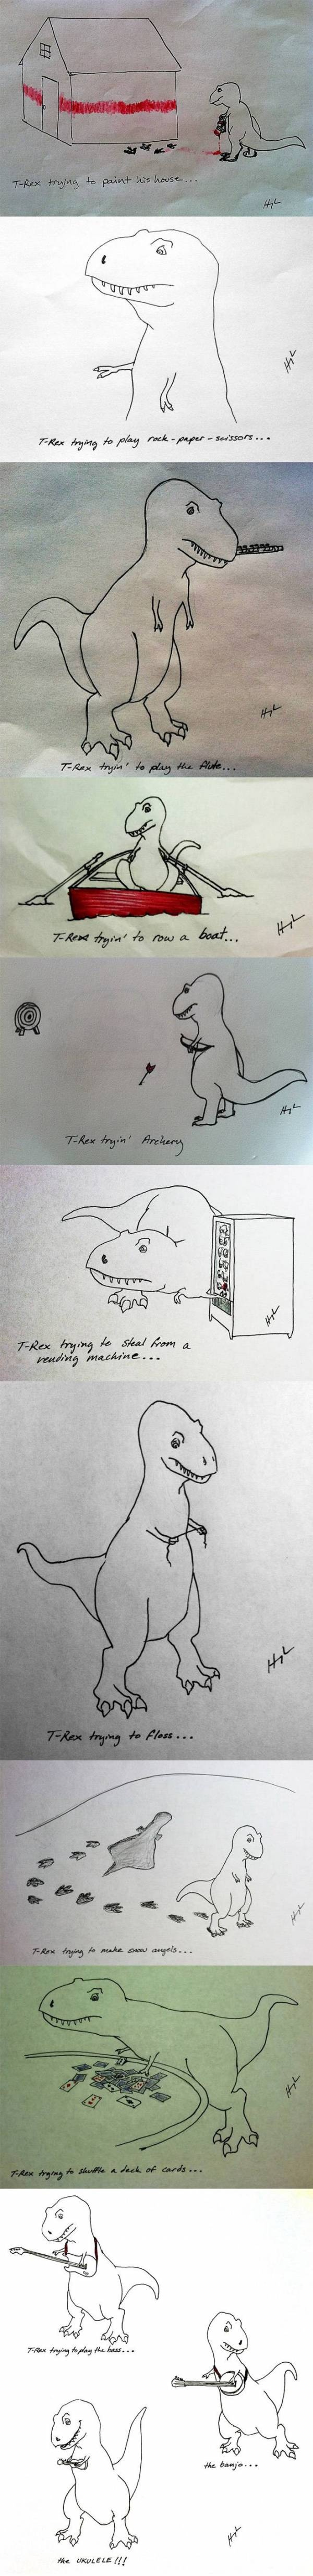 """T-rex trying things. This made me laugh more than it should've. :)"" I like the fact he can play ukulele. :D"